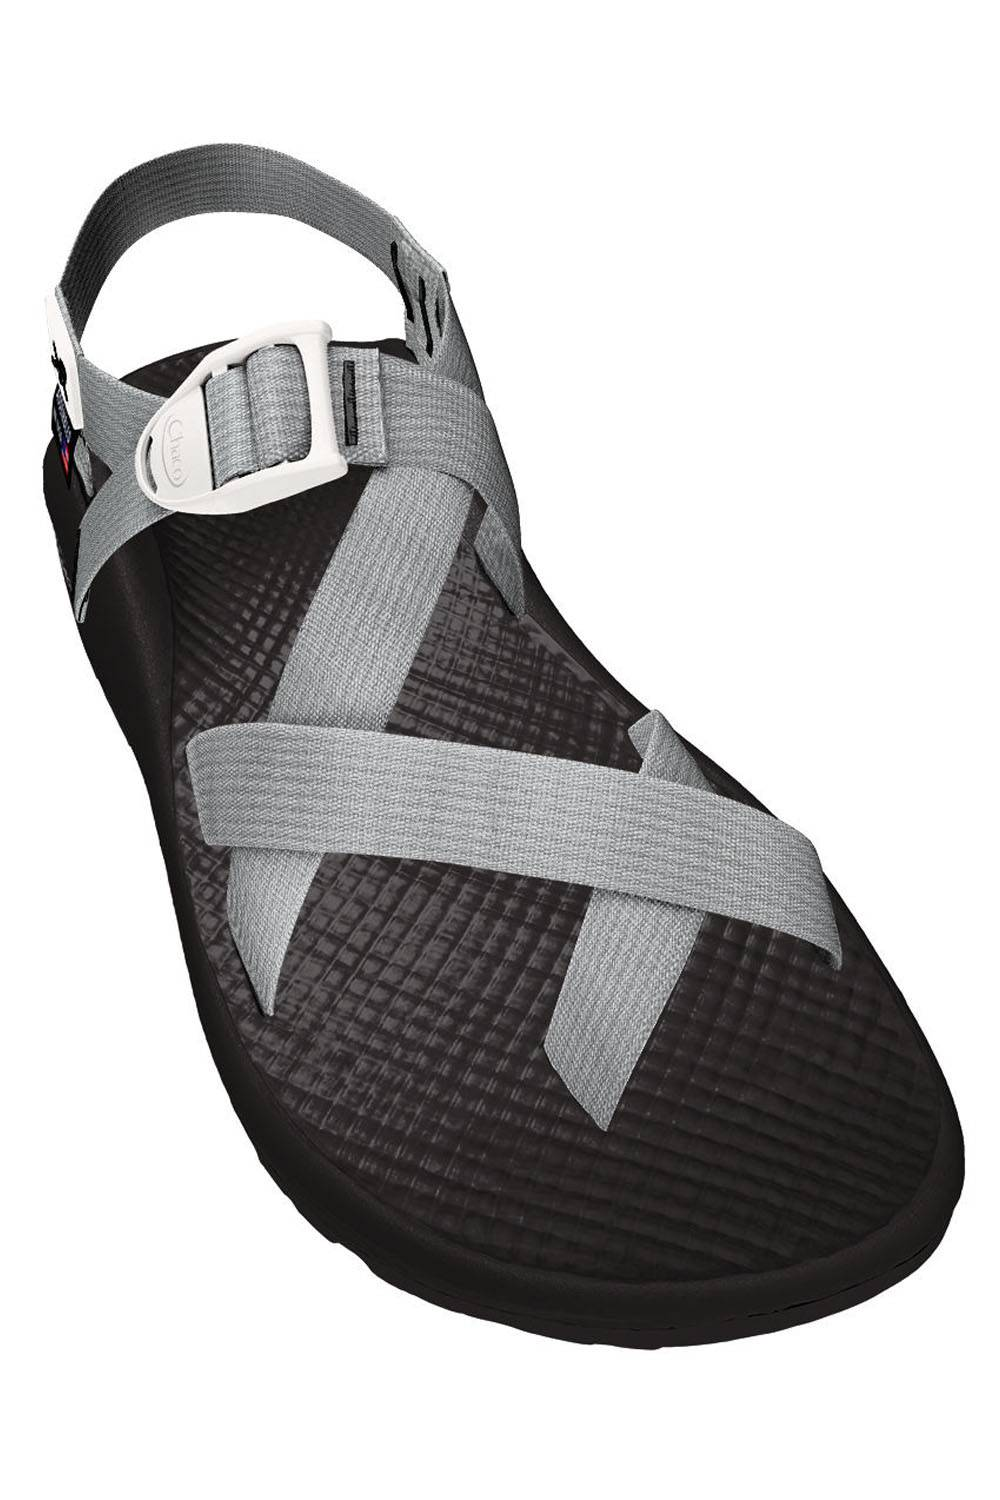 chaco cheap ethical sandals usa